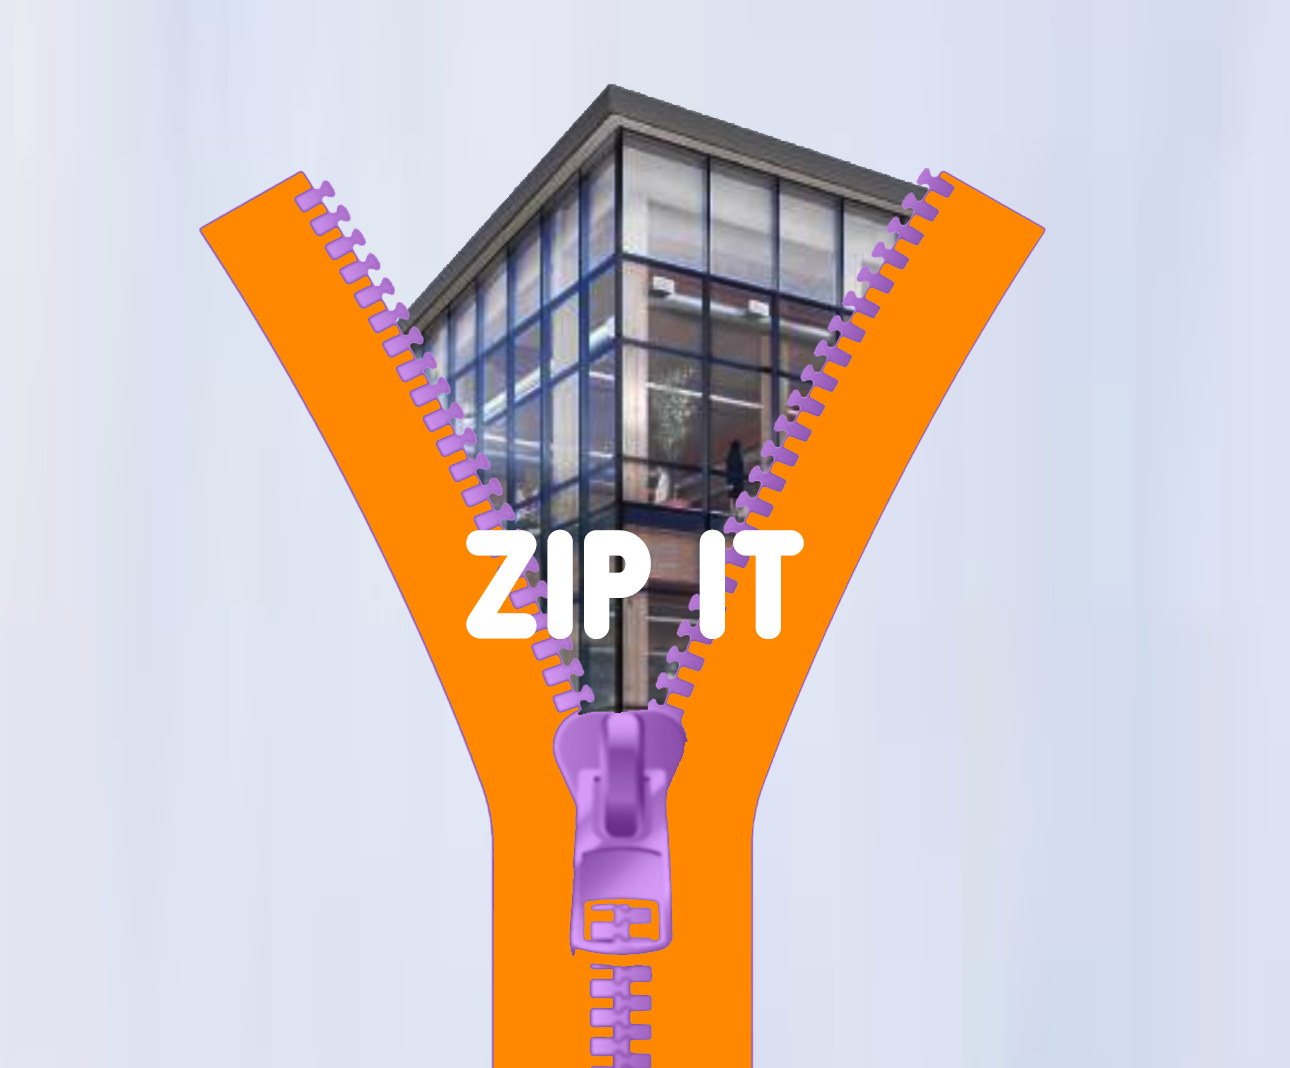 zip it architecture